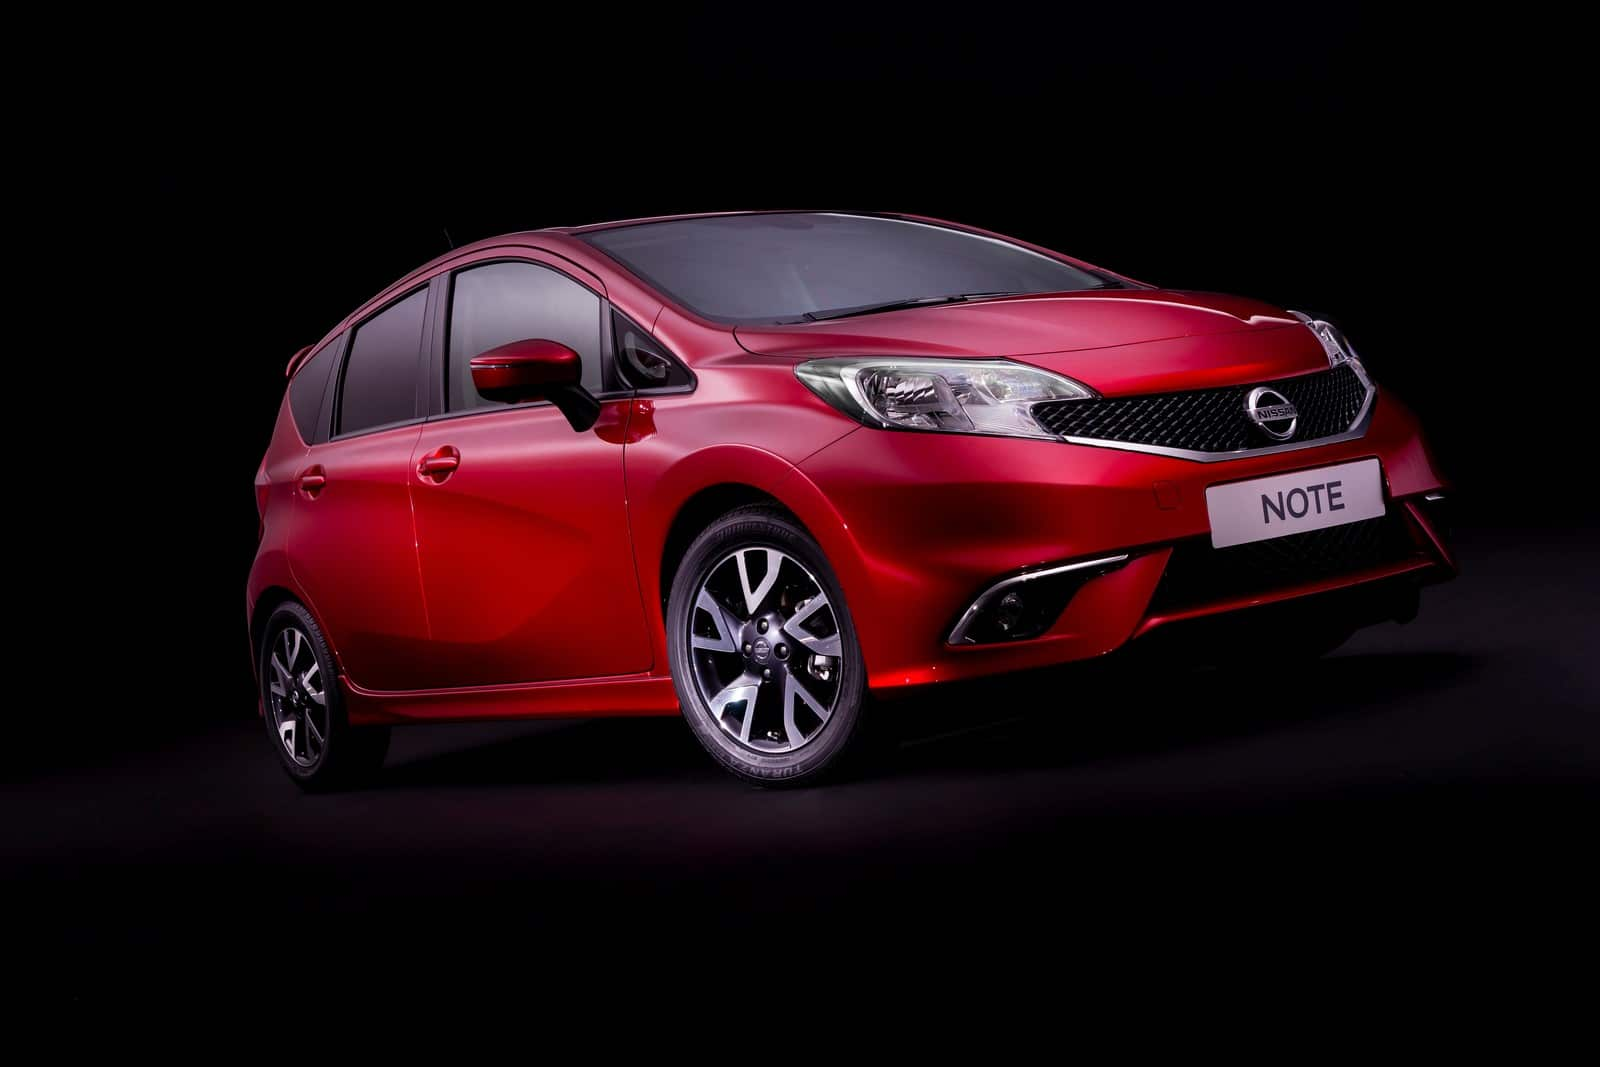 Le Nissan Note II 2013 propose l'anti-collision